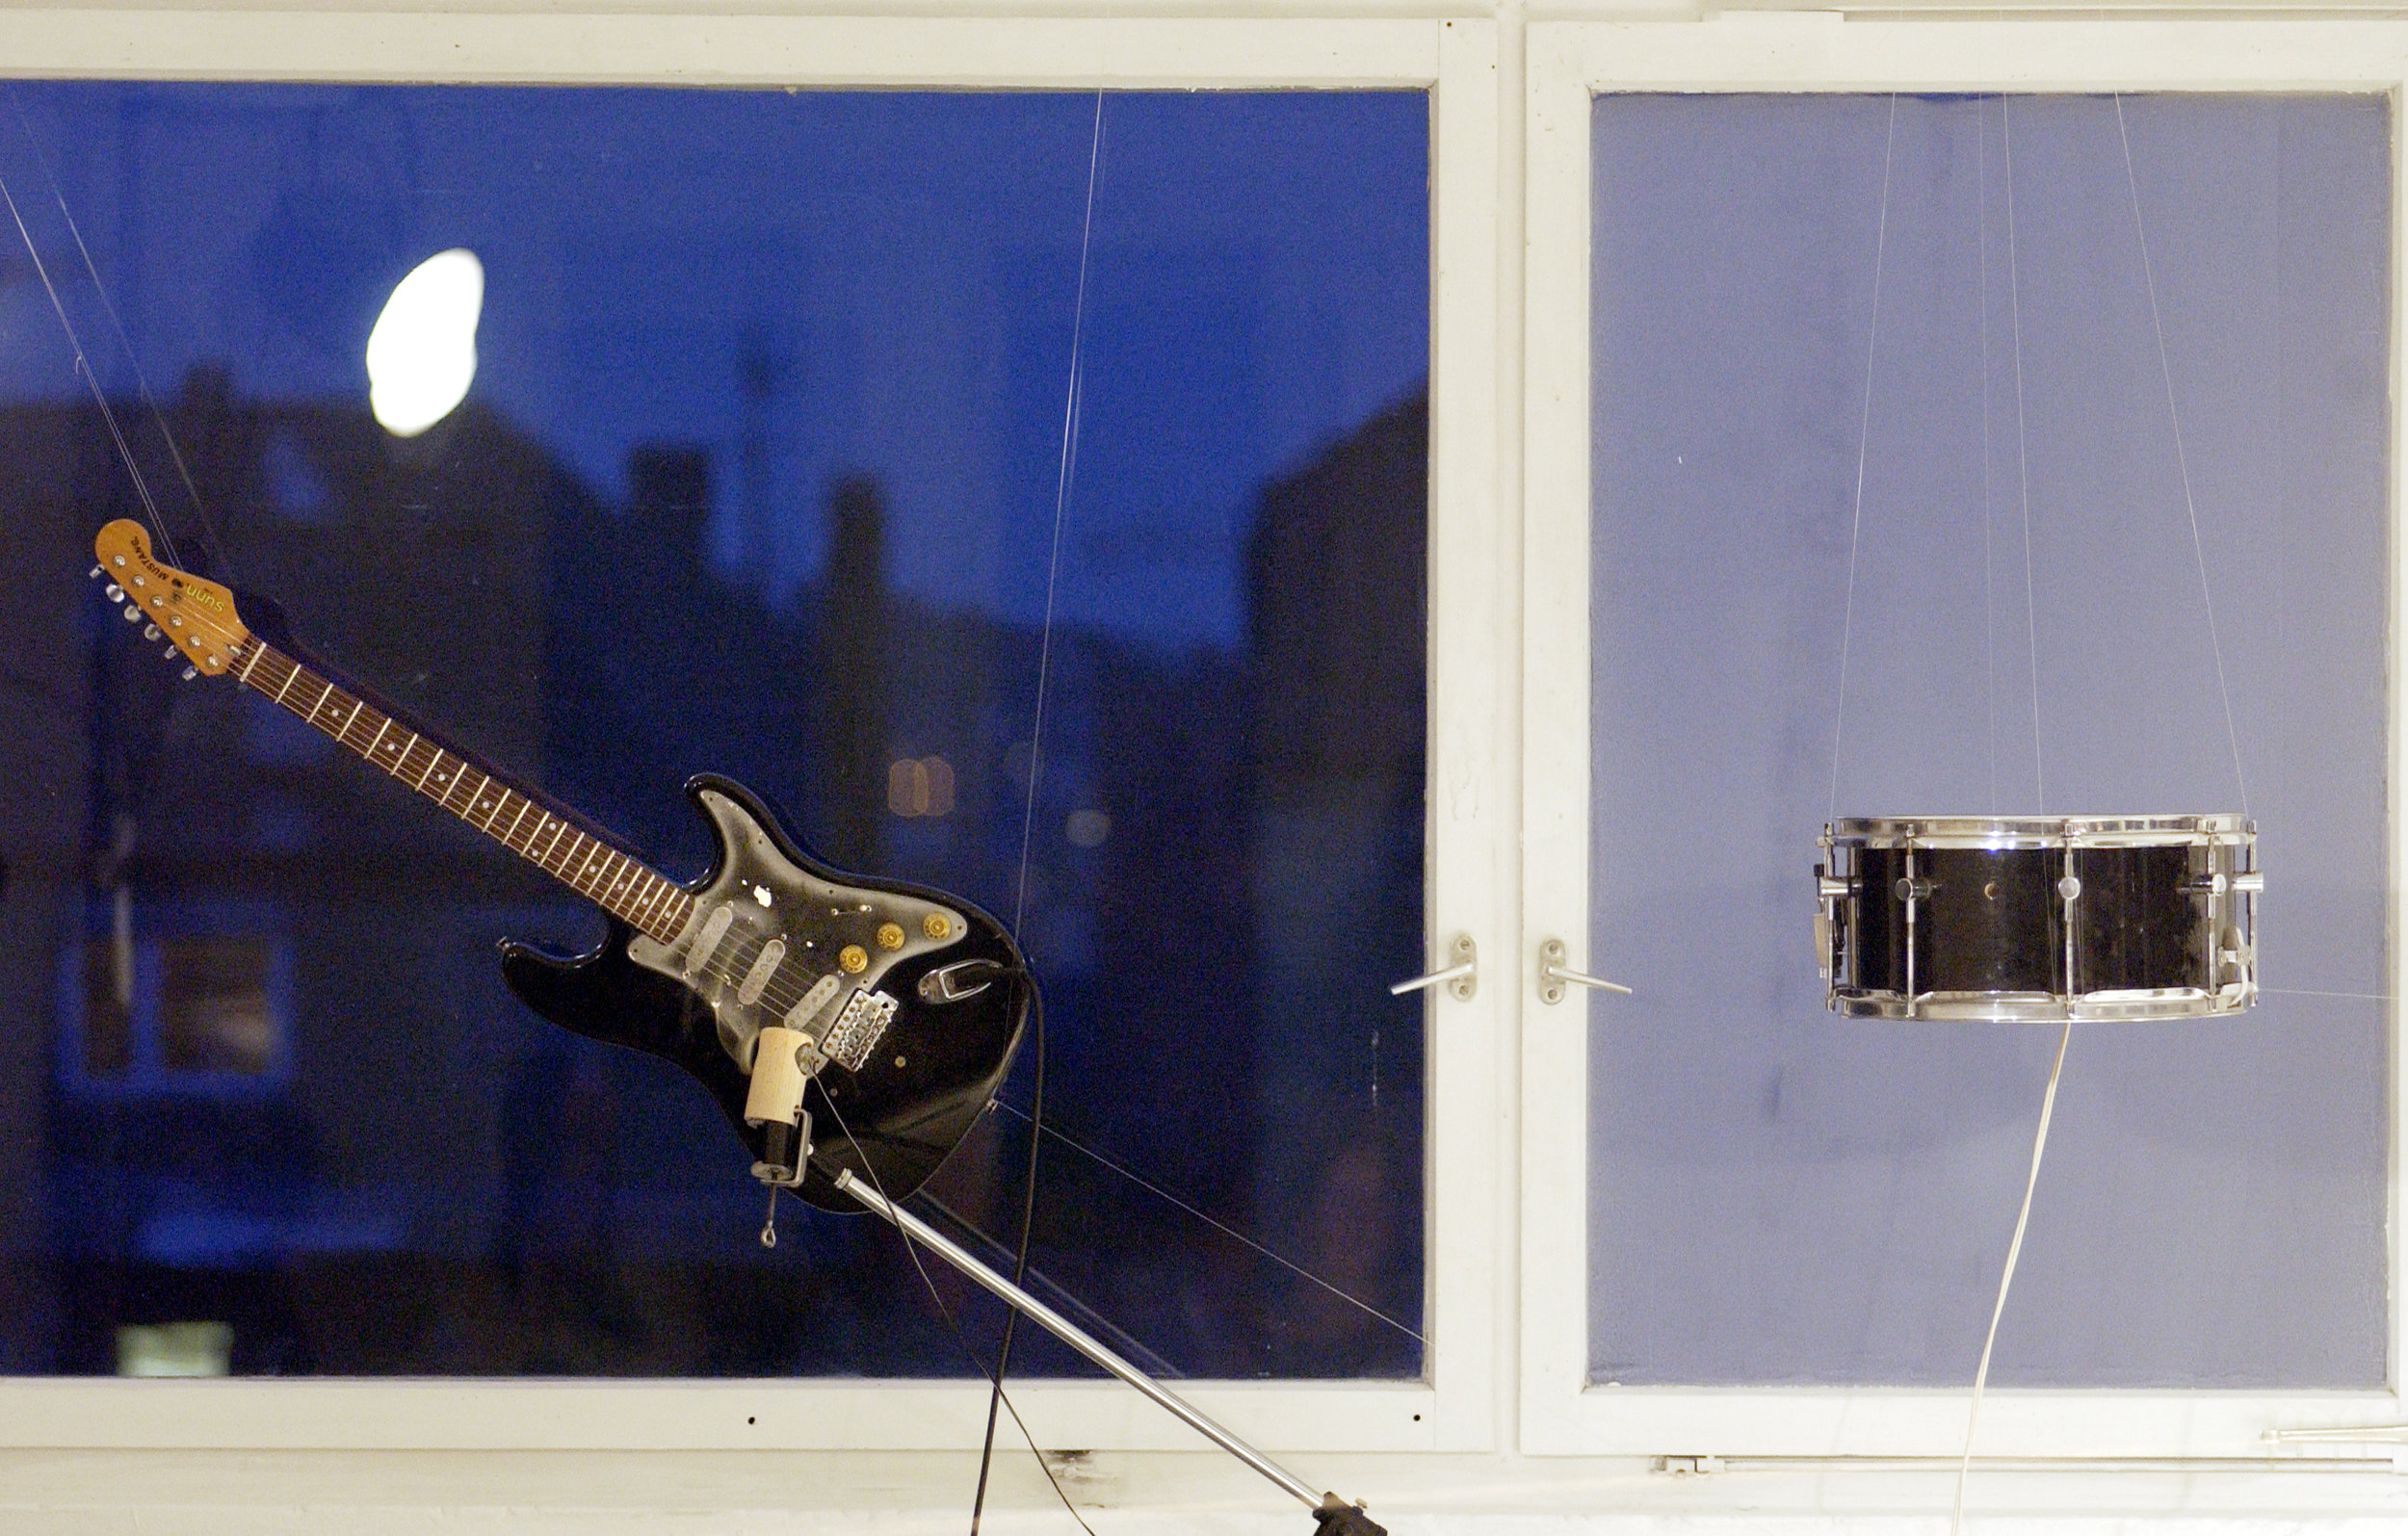 Konrad Sprenger installation, guitar strummed by motorized monofilament, snare drum resonated by an attached transducer playing sequencer files